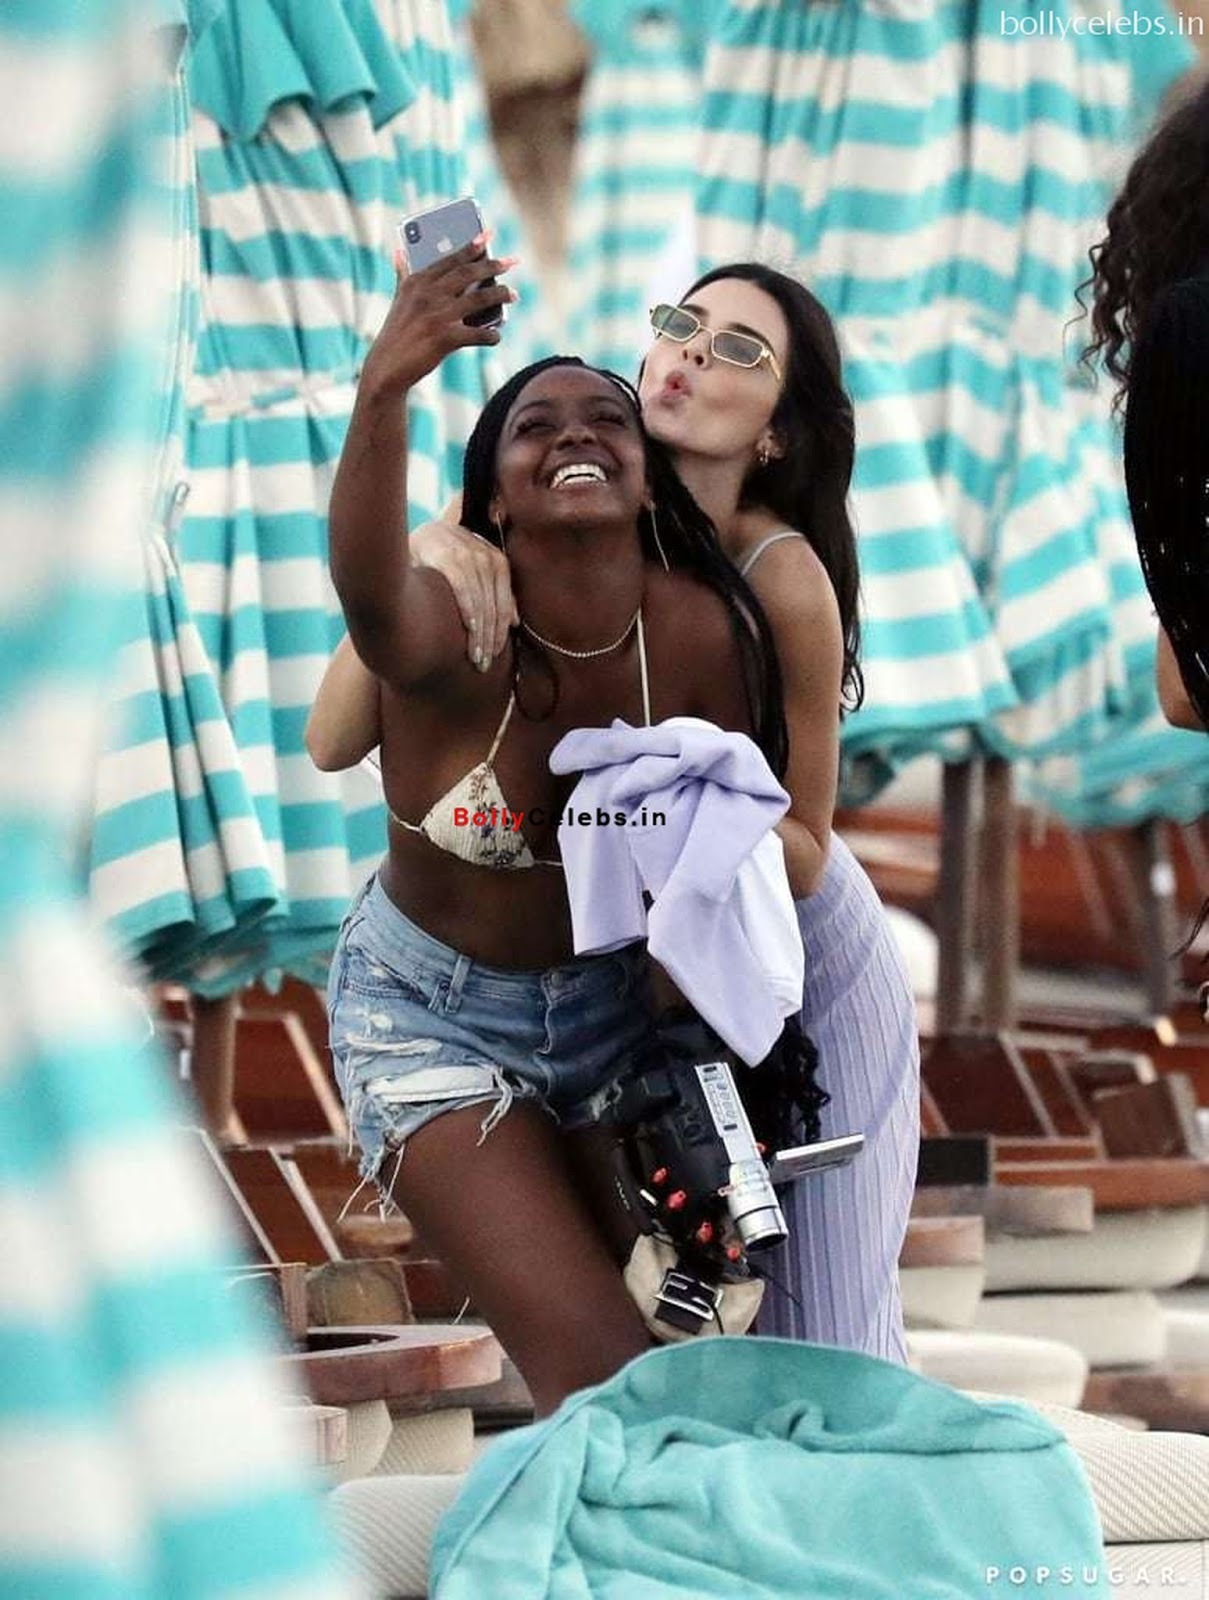 Kendall Jenner in Bikini with her teenager frinds in bikini at Mykonos Beach Greece